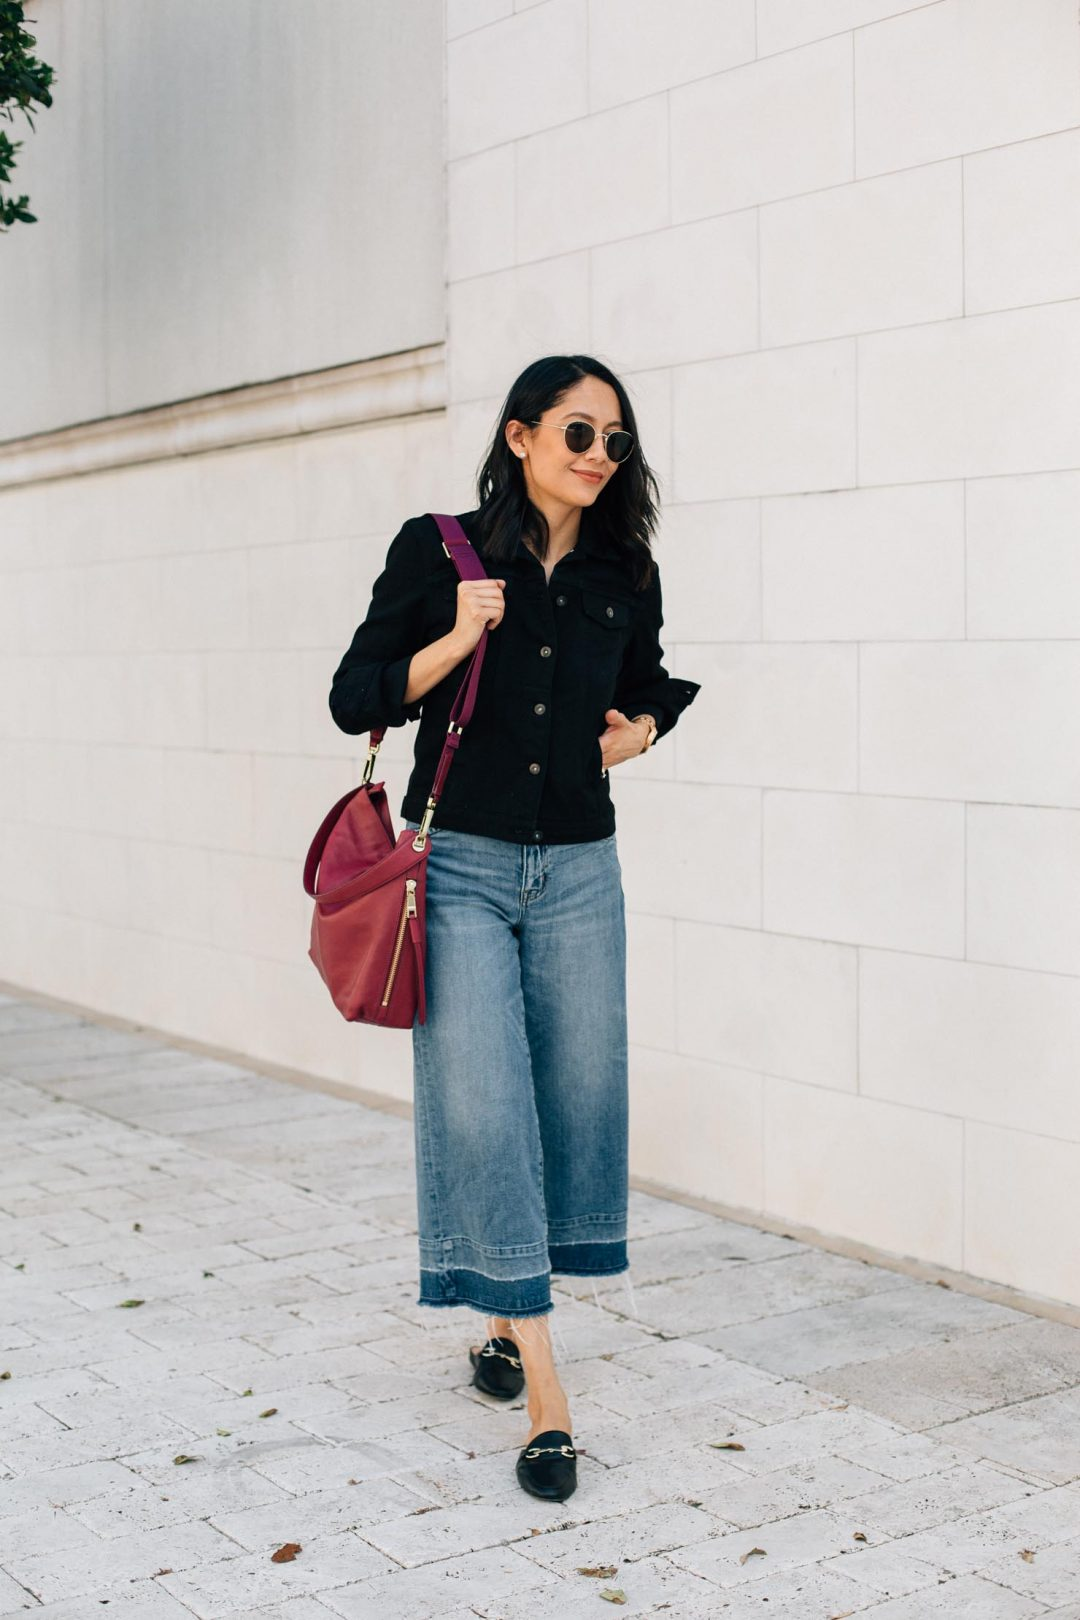 Lifestyle Blogger Lilly Beltran of Daily Craving in a fall look wearing a black denim jacket and wide leg denim